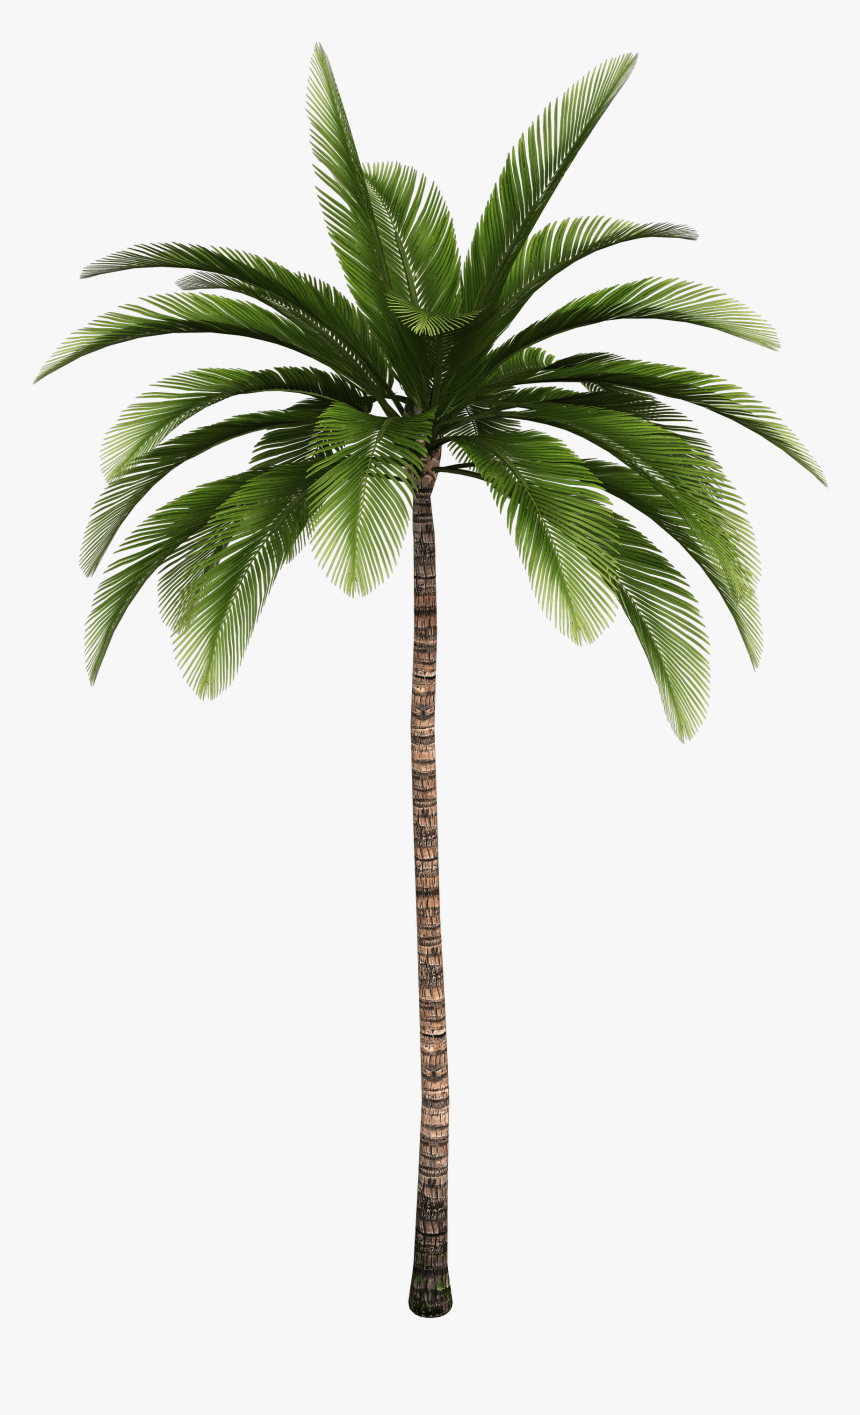 Clip Art Trees Coconut Babassu Free - Palm Tree High Resolution, HD Png Download, Free Download